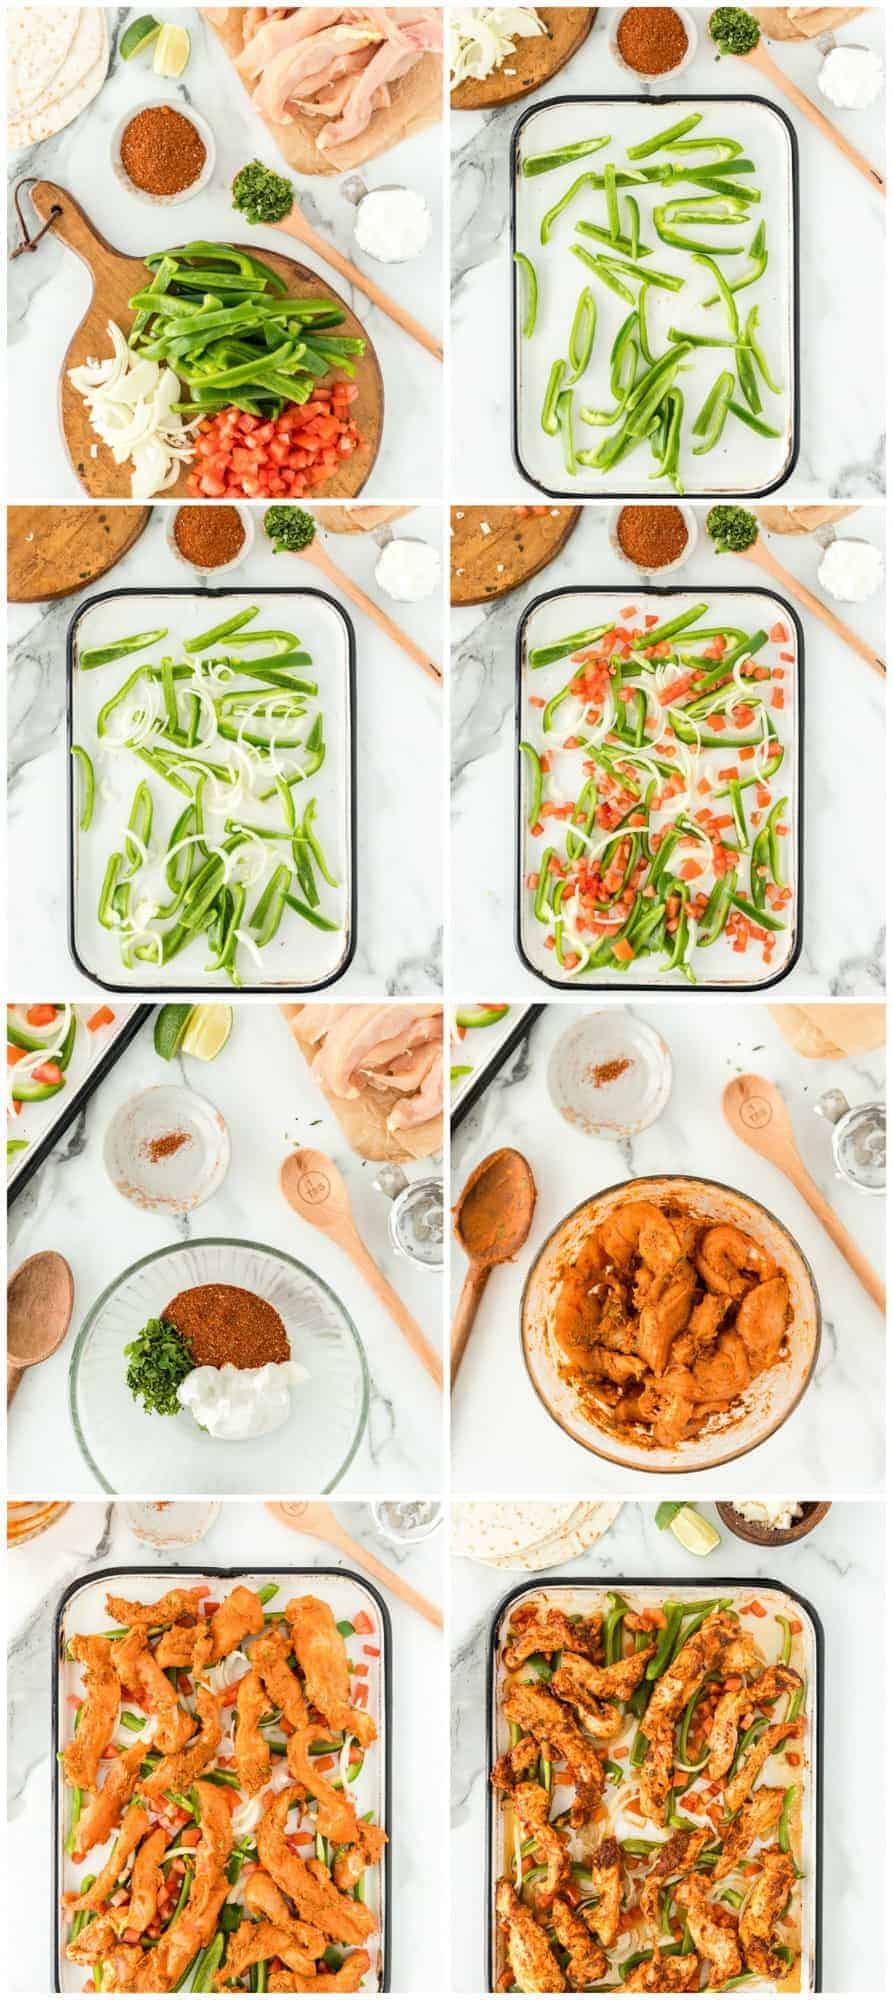 step by step photos for making baked chicken fajitas